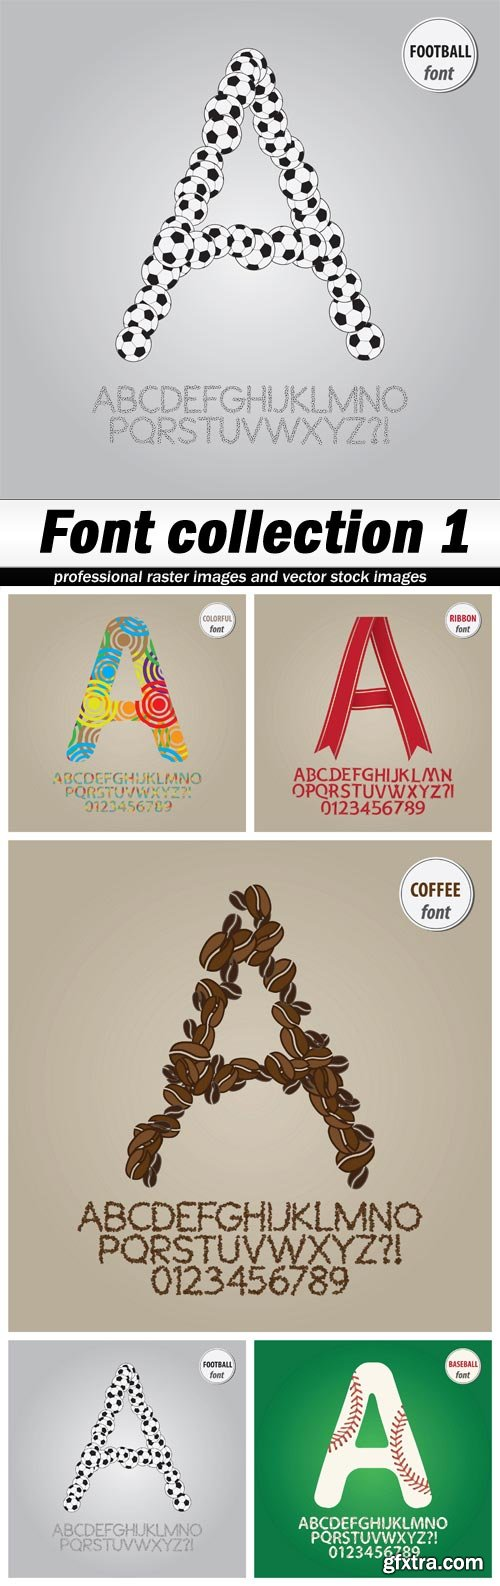 Font collection 1 - 5 EPS